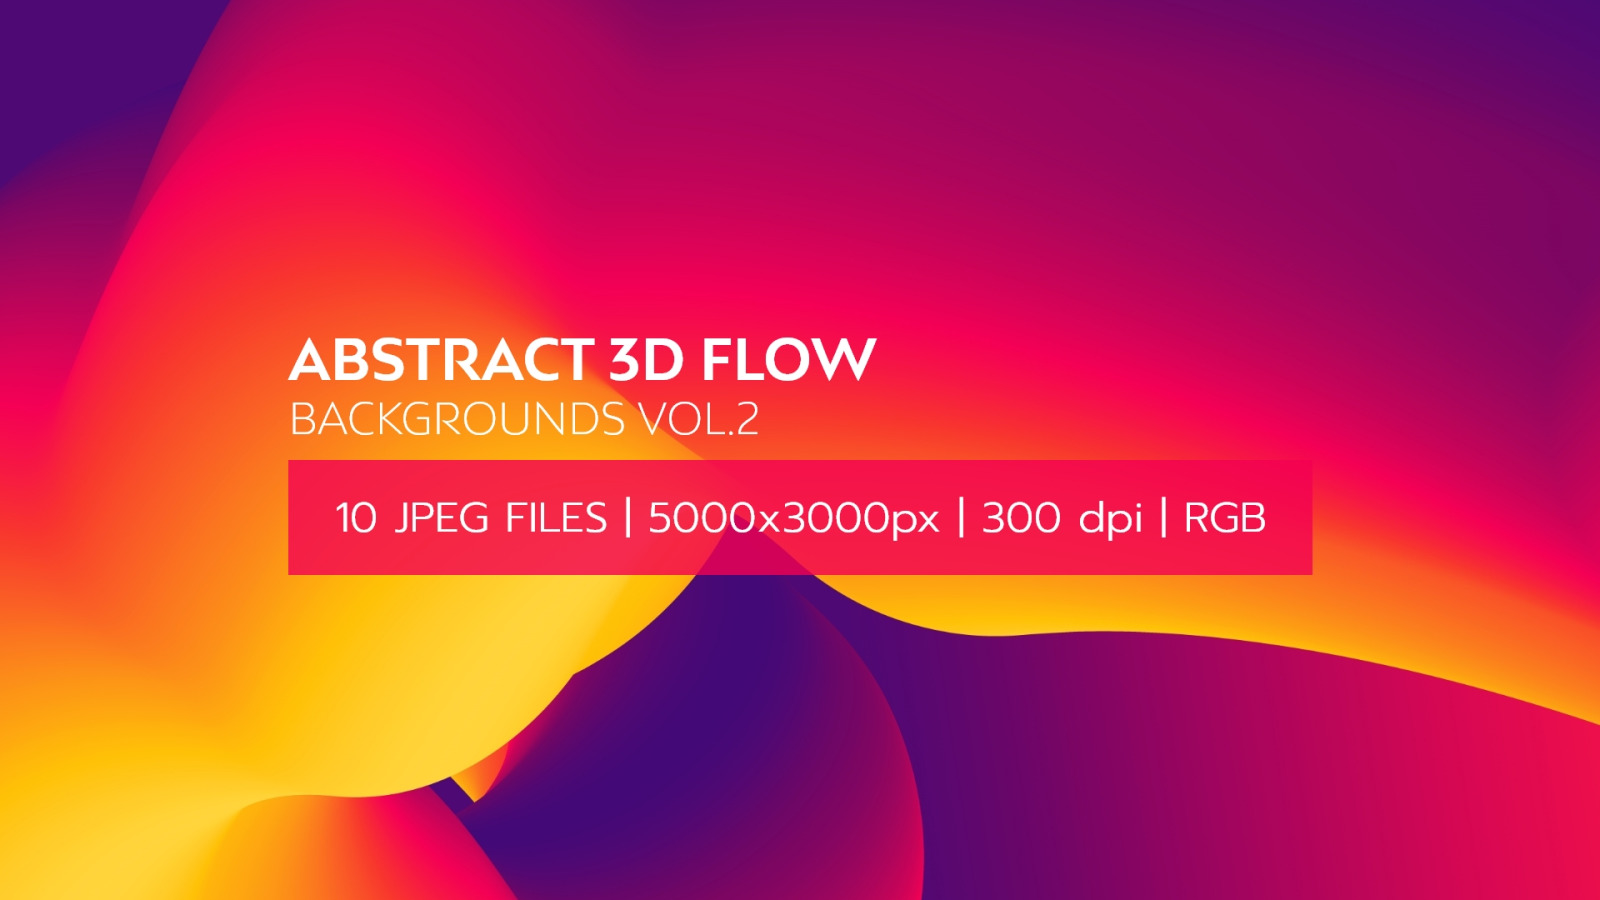 Abstract 3D Flow Backgrounds Vol.2